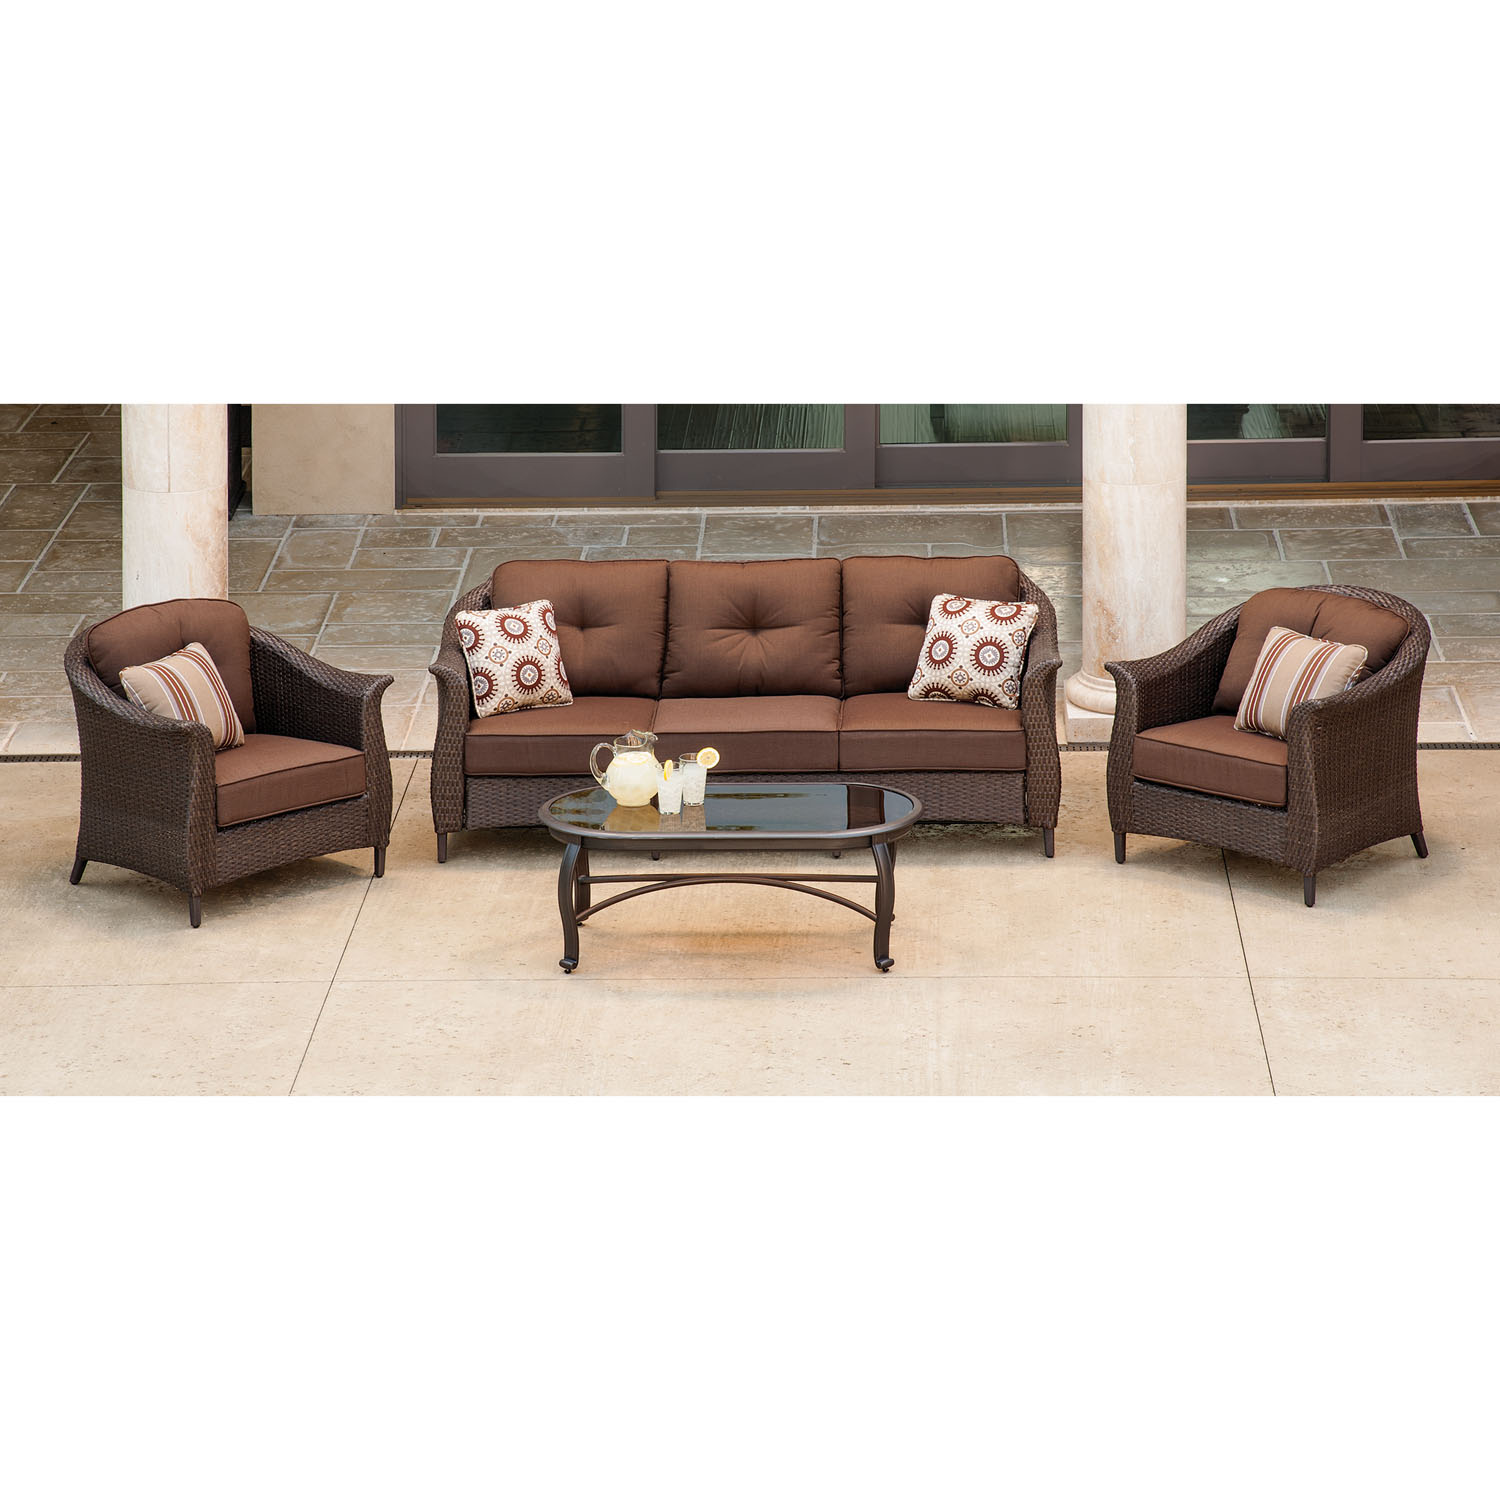 Hanover Gramercy 4 Piece Wicker Patio Conversation Set